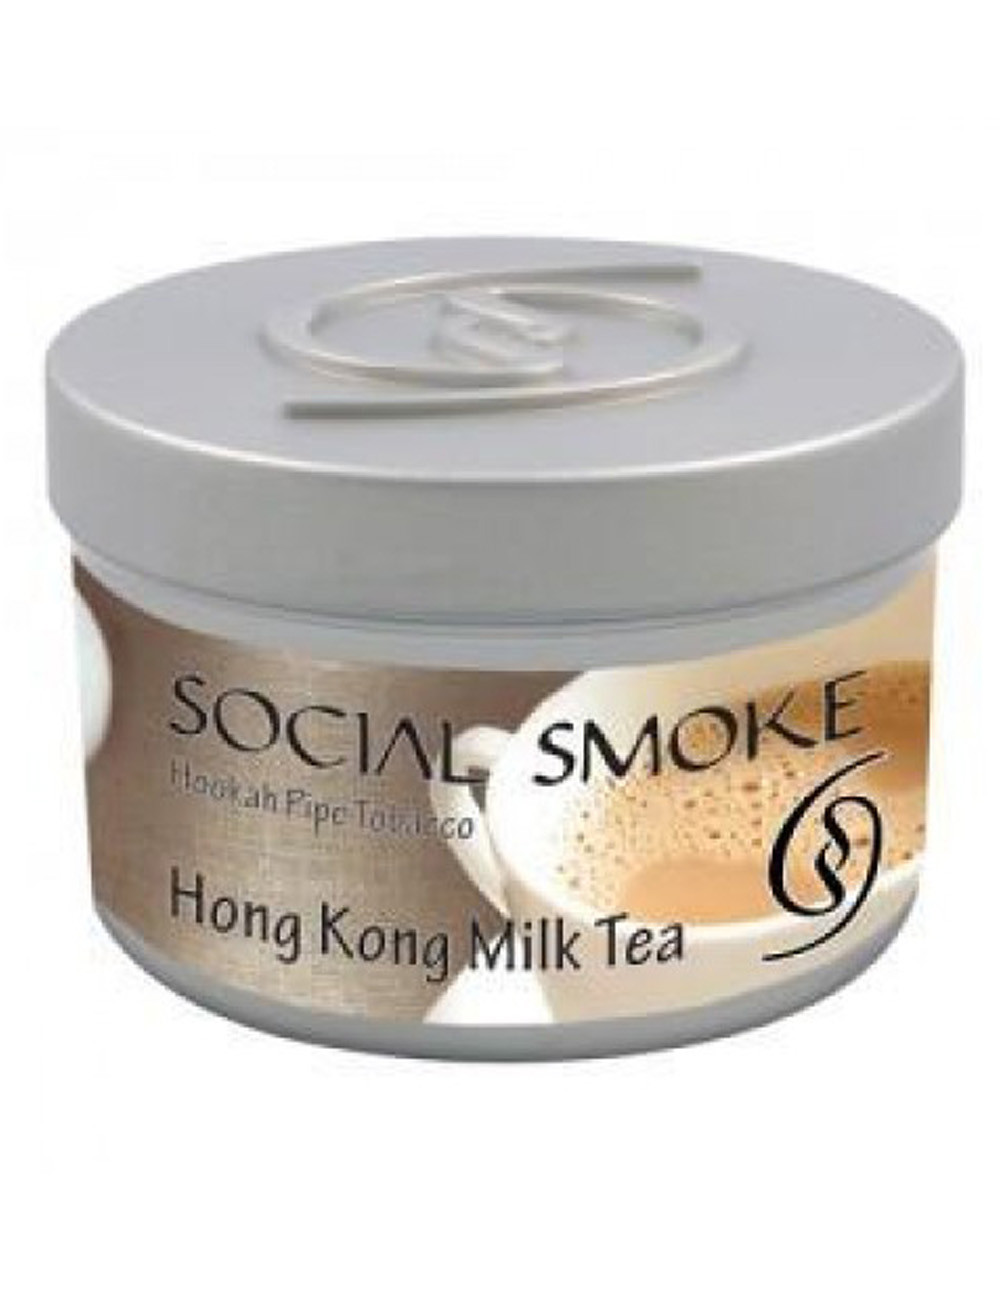 Hong Kong Milk